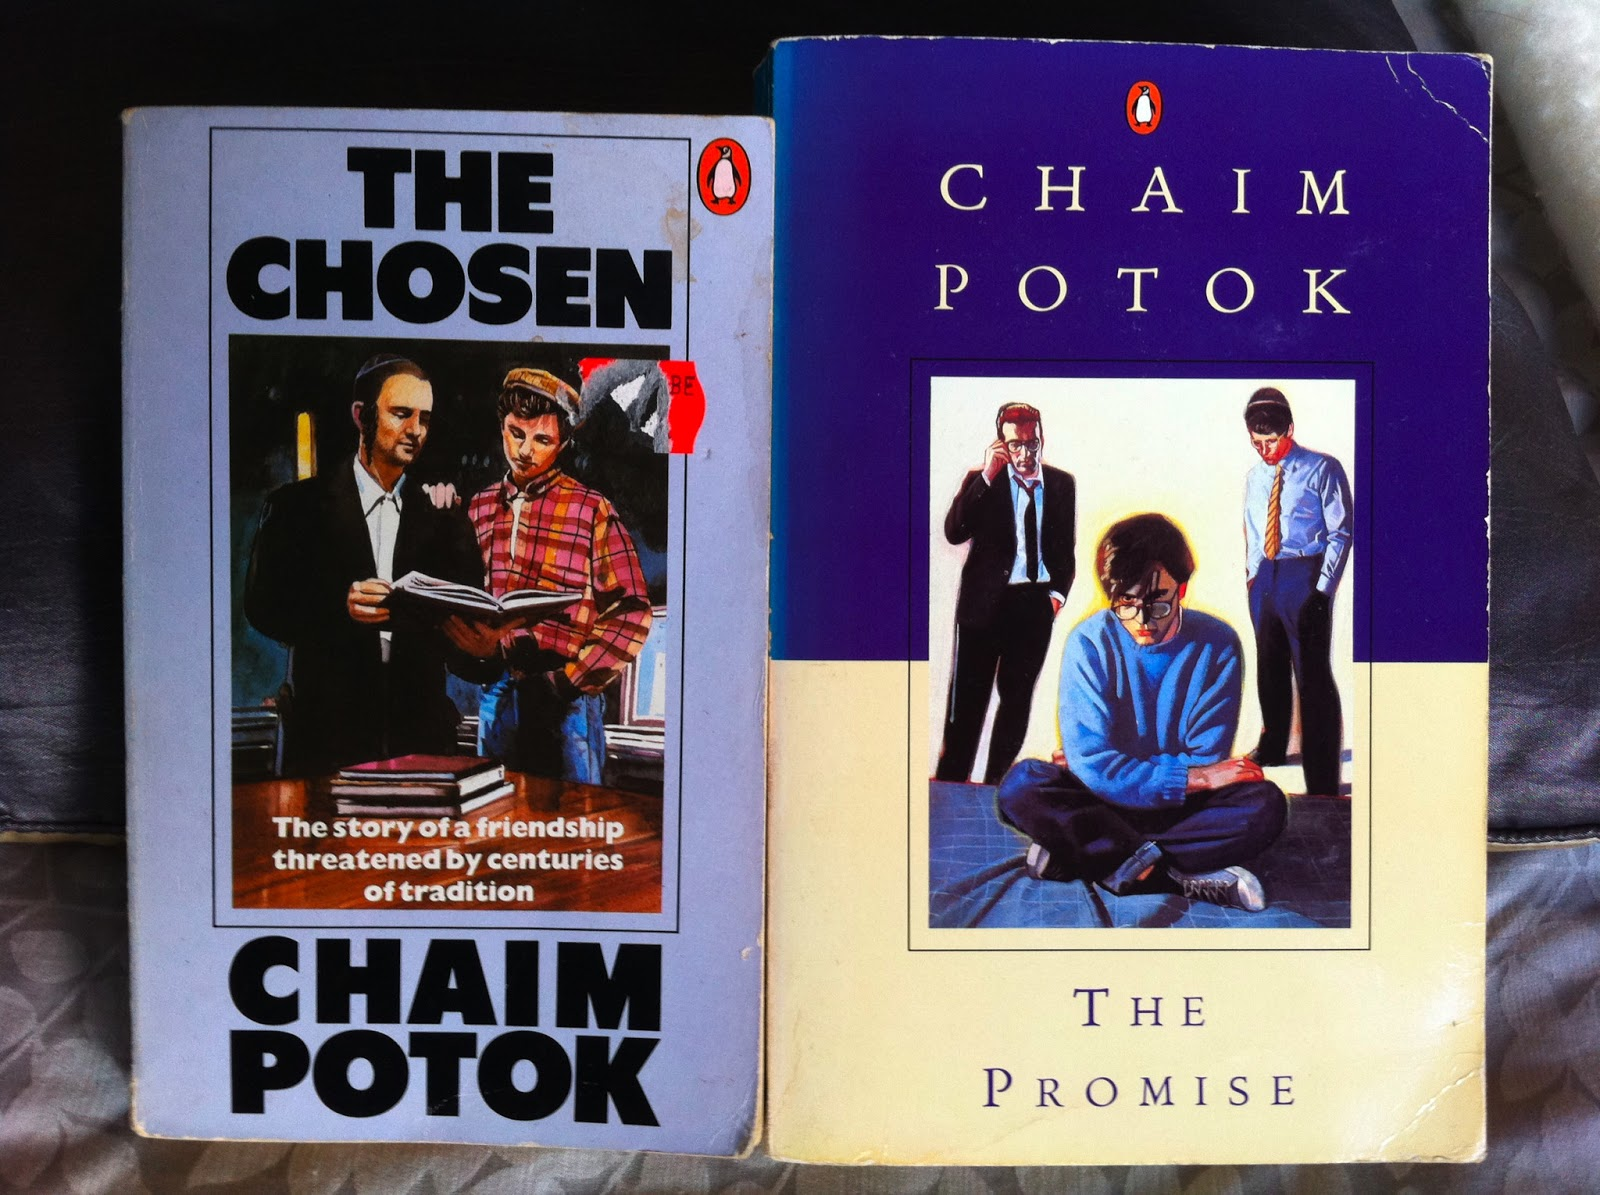 an analysis of the chosens plot by chaim potok An introduction to the analysis of the ritalin medicine of john f kennedy an analysis of the chosens plot by chaim potok came to the presidency.